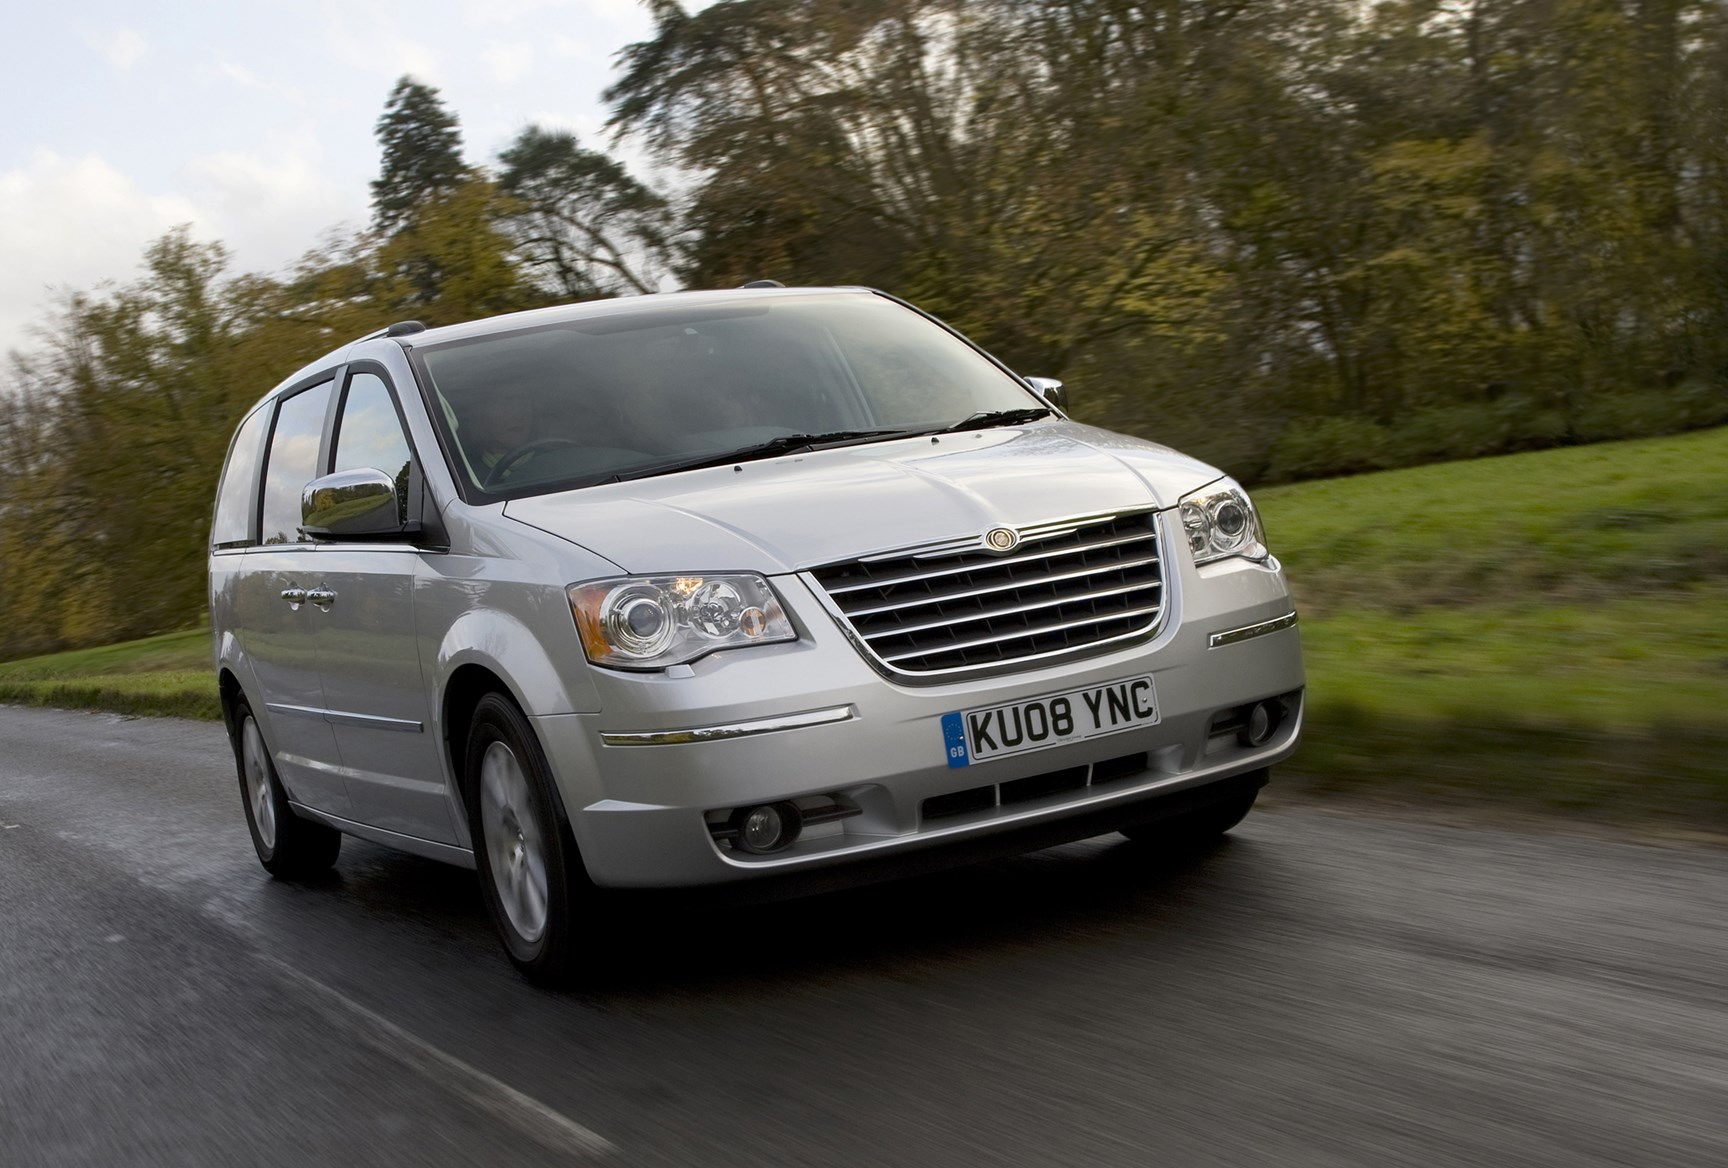 Chrysler Grand Voyager Station Wagon Review 2008 2015 Parkers Tuning